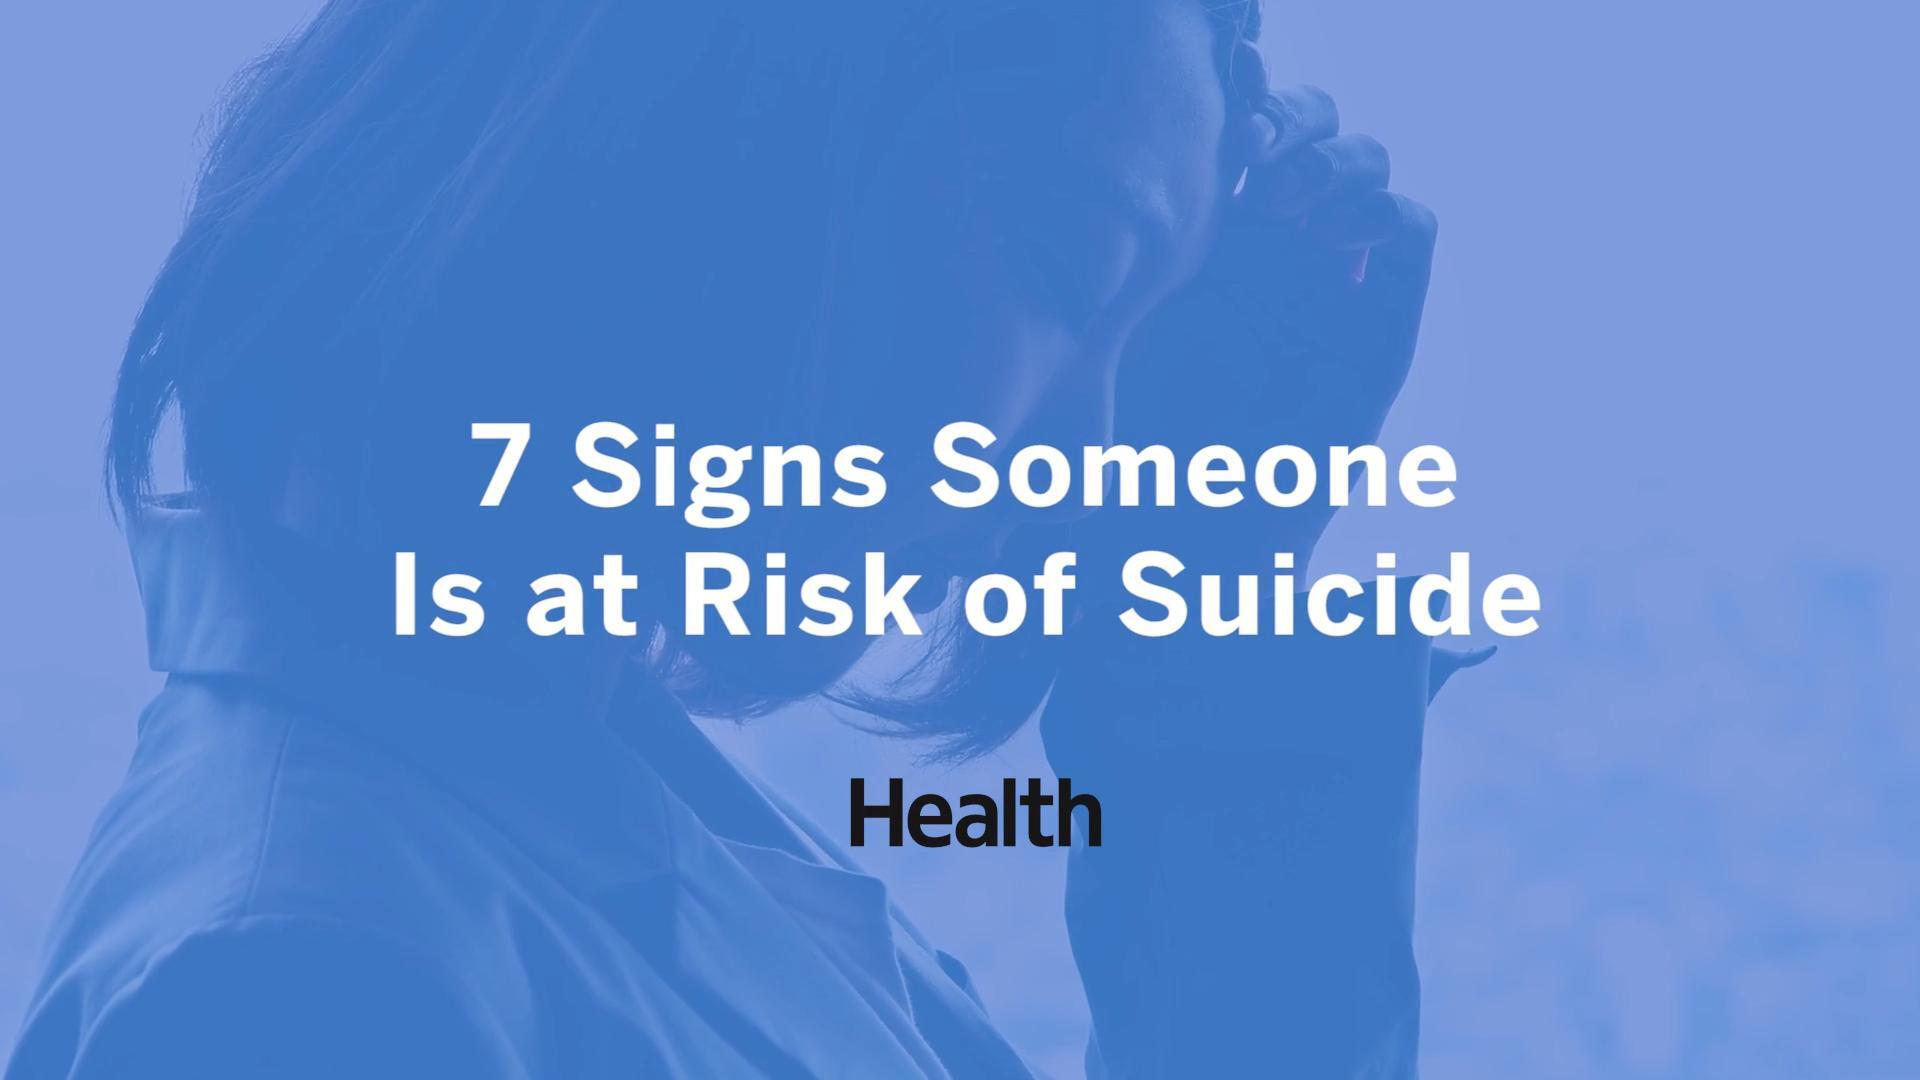 Way the easiest what kill yourself to is Suicide methods